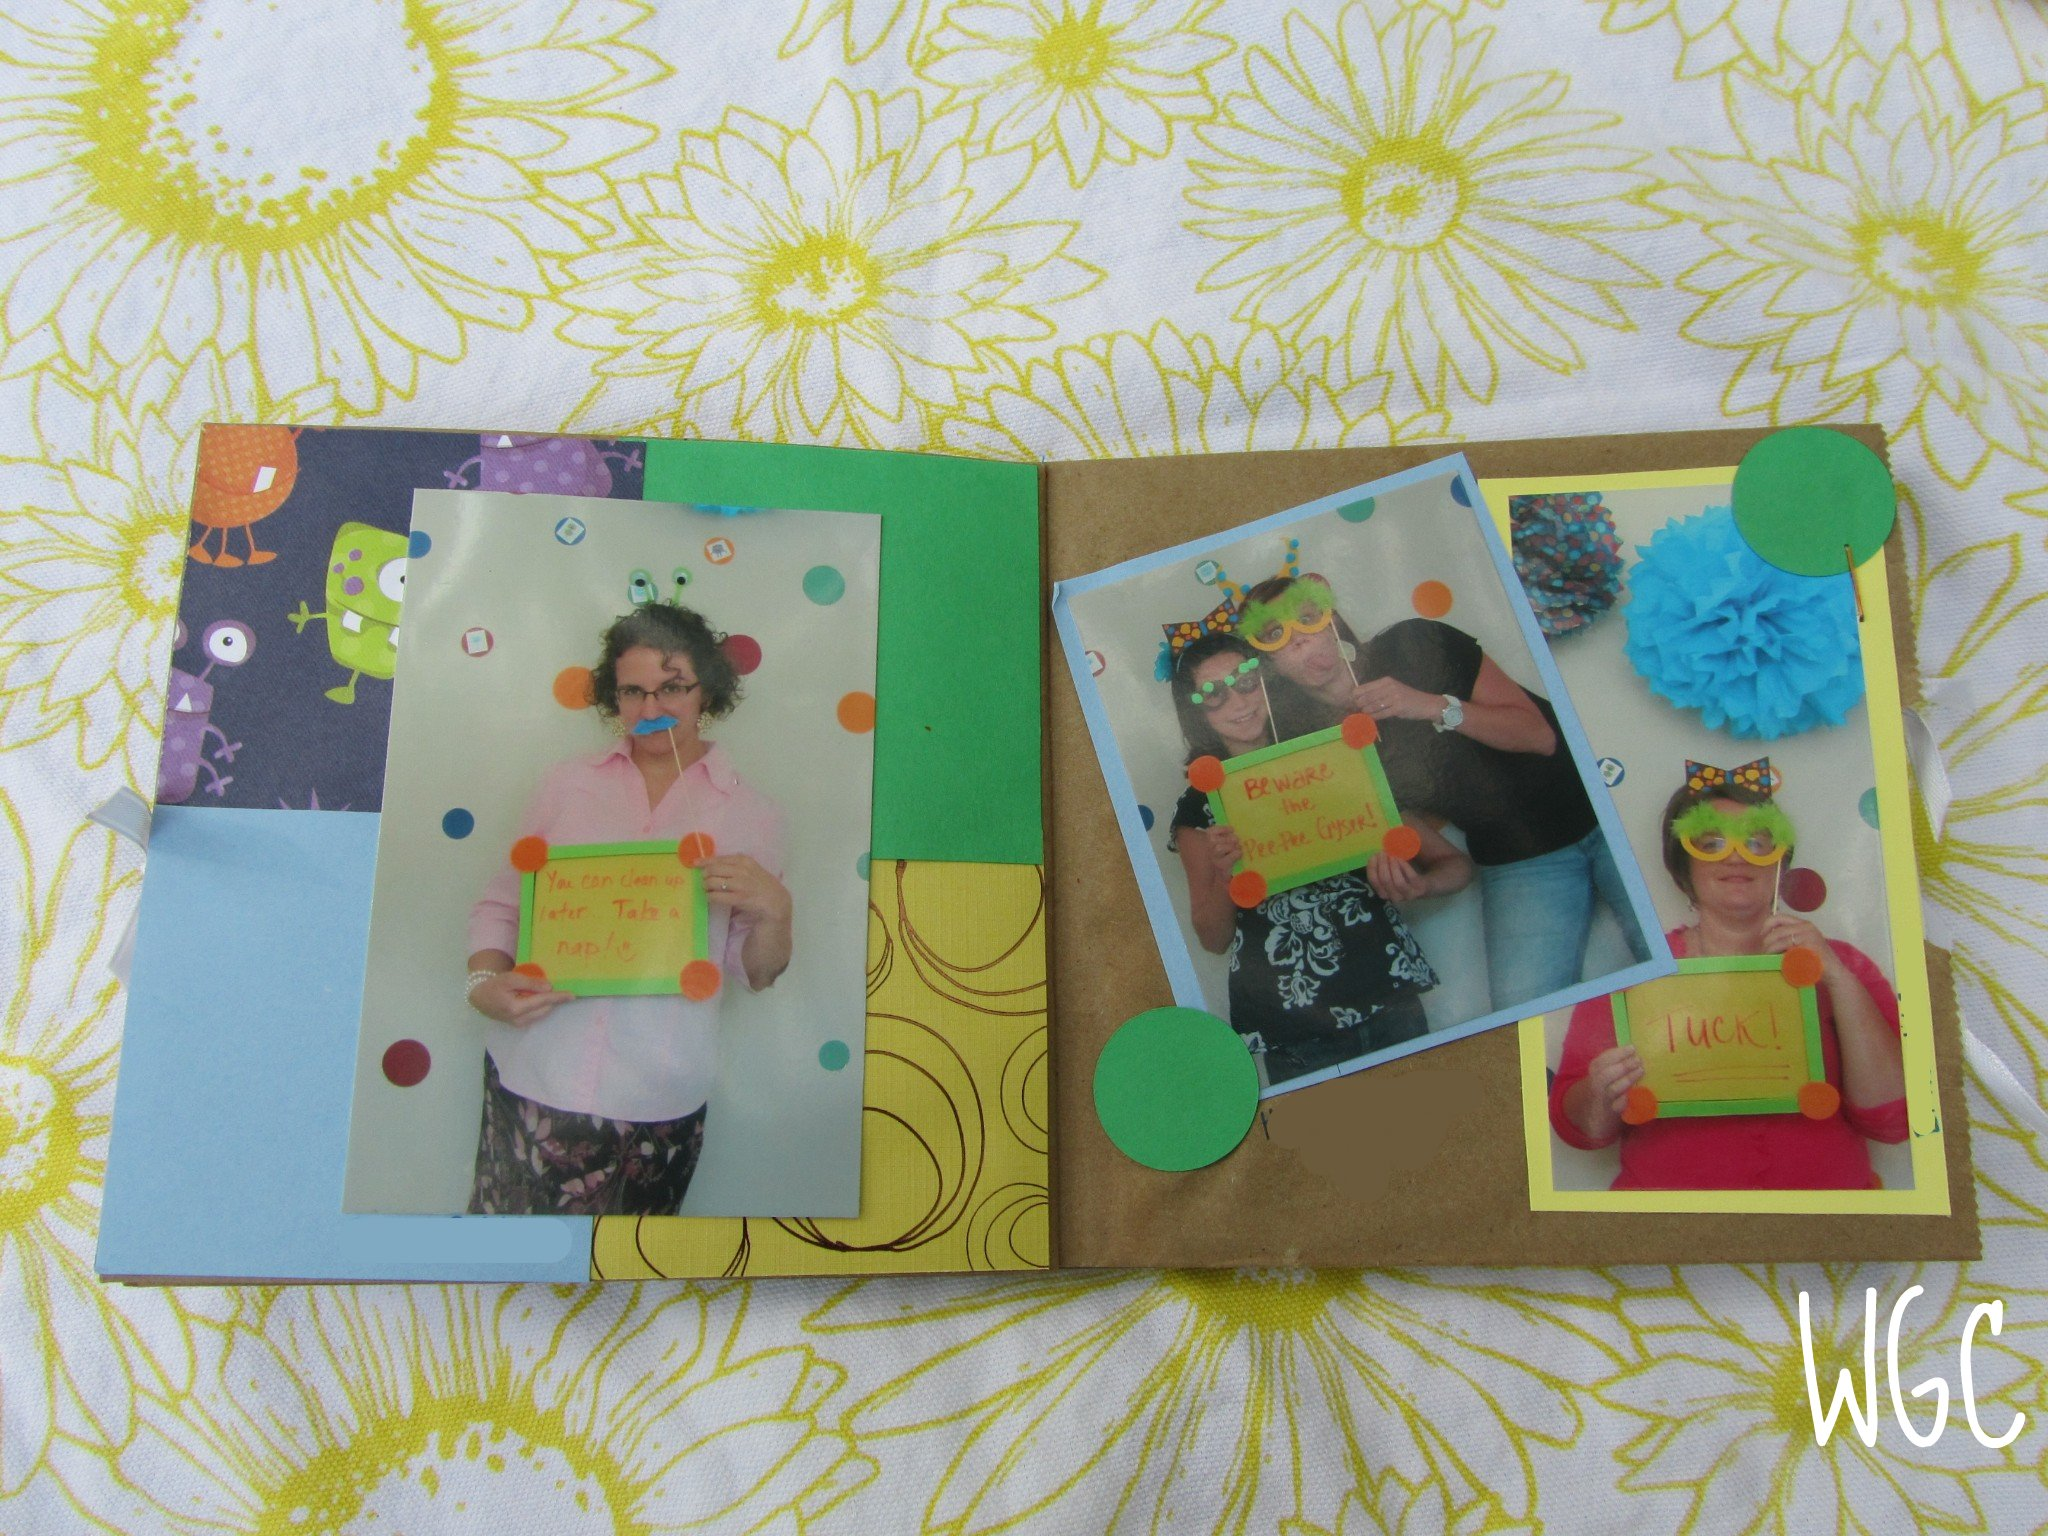 Paper bag scrapbook - Cd Of All The Pictures With A Custom Cd Case Out Of The Monster Paper